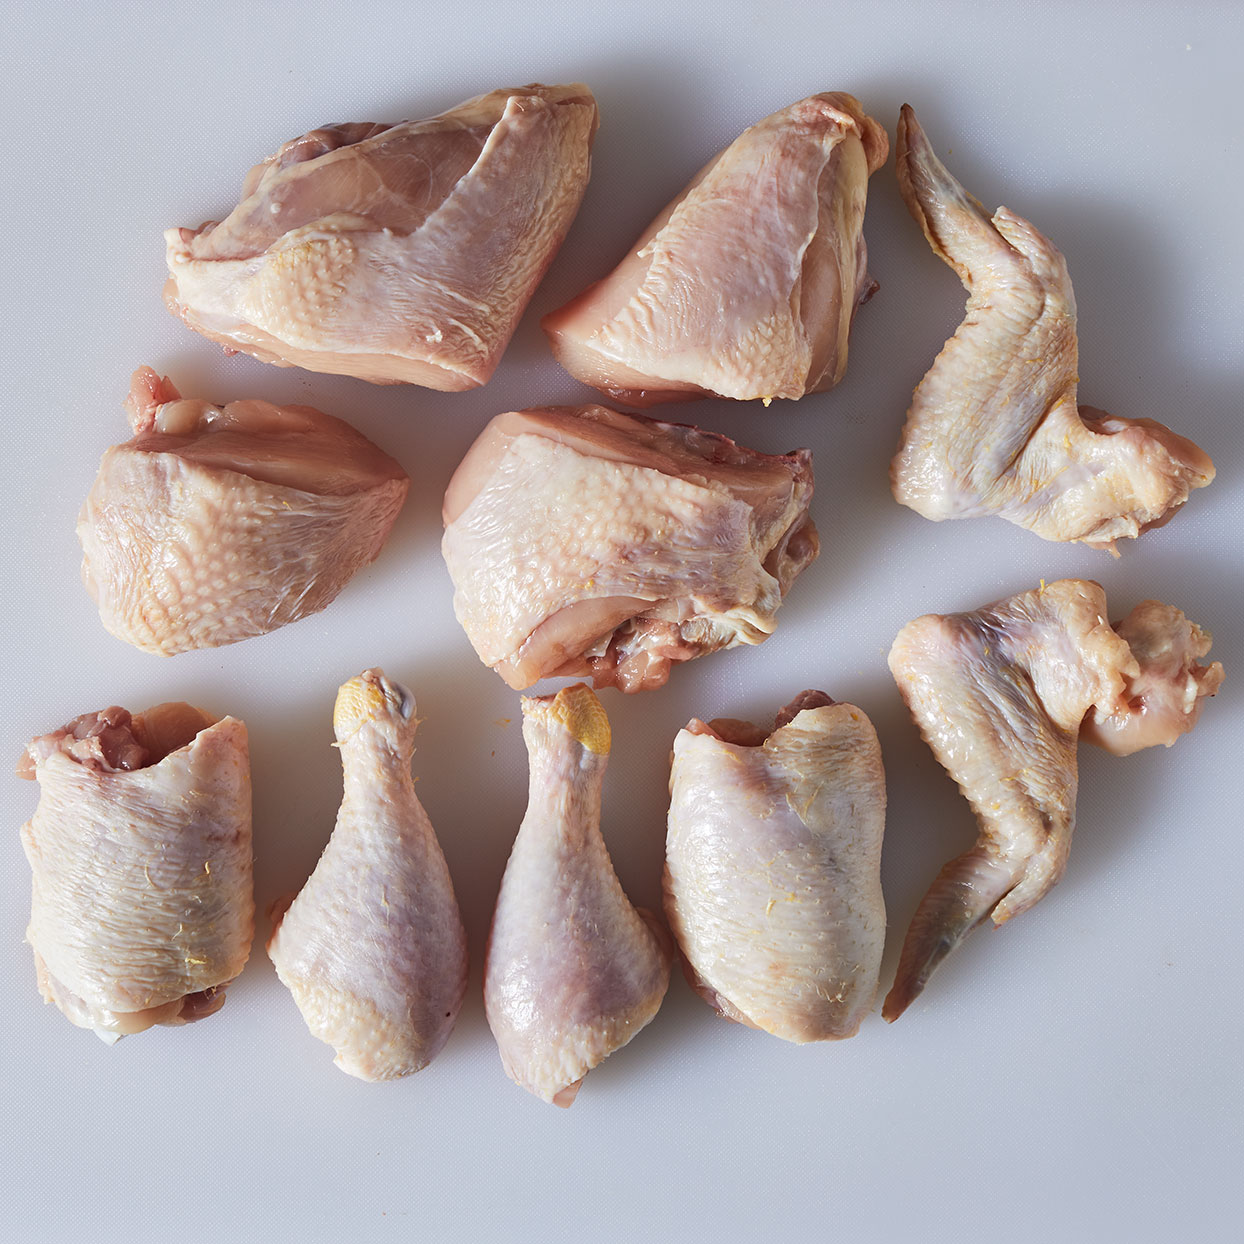 How-to-cut-up-a-whole-chicken-step-8